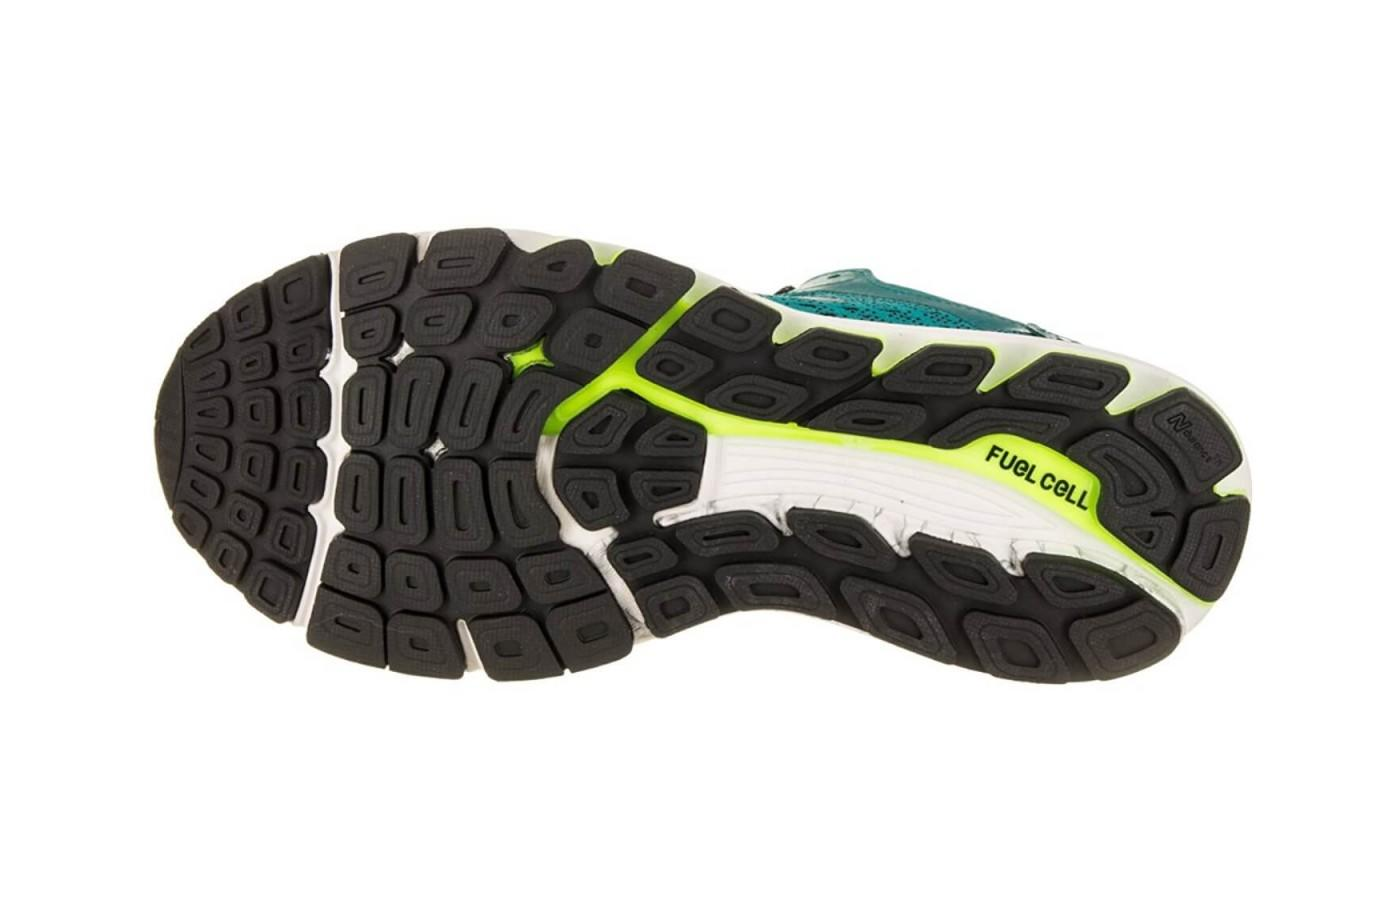 The underfoot design uses multiple rubber materials for added traction and durability.